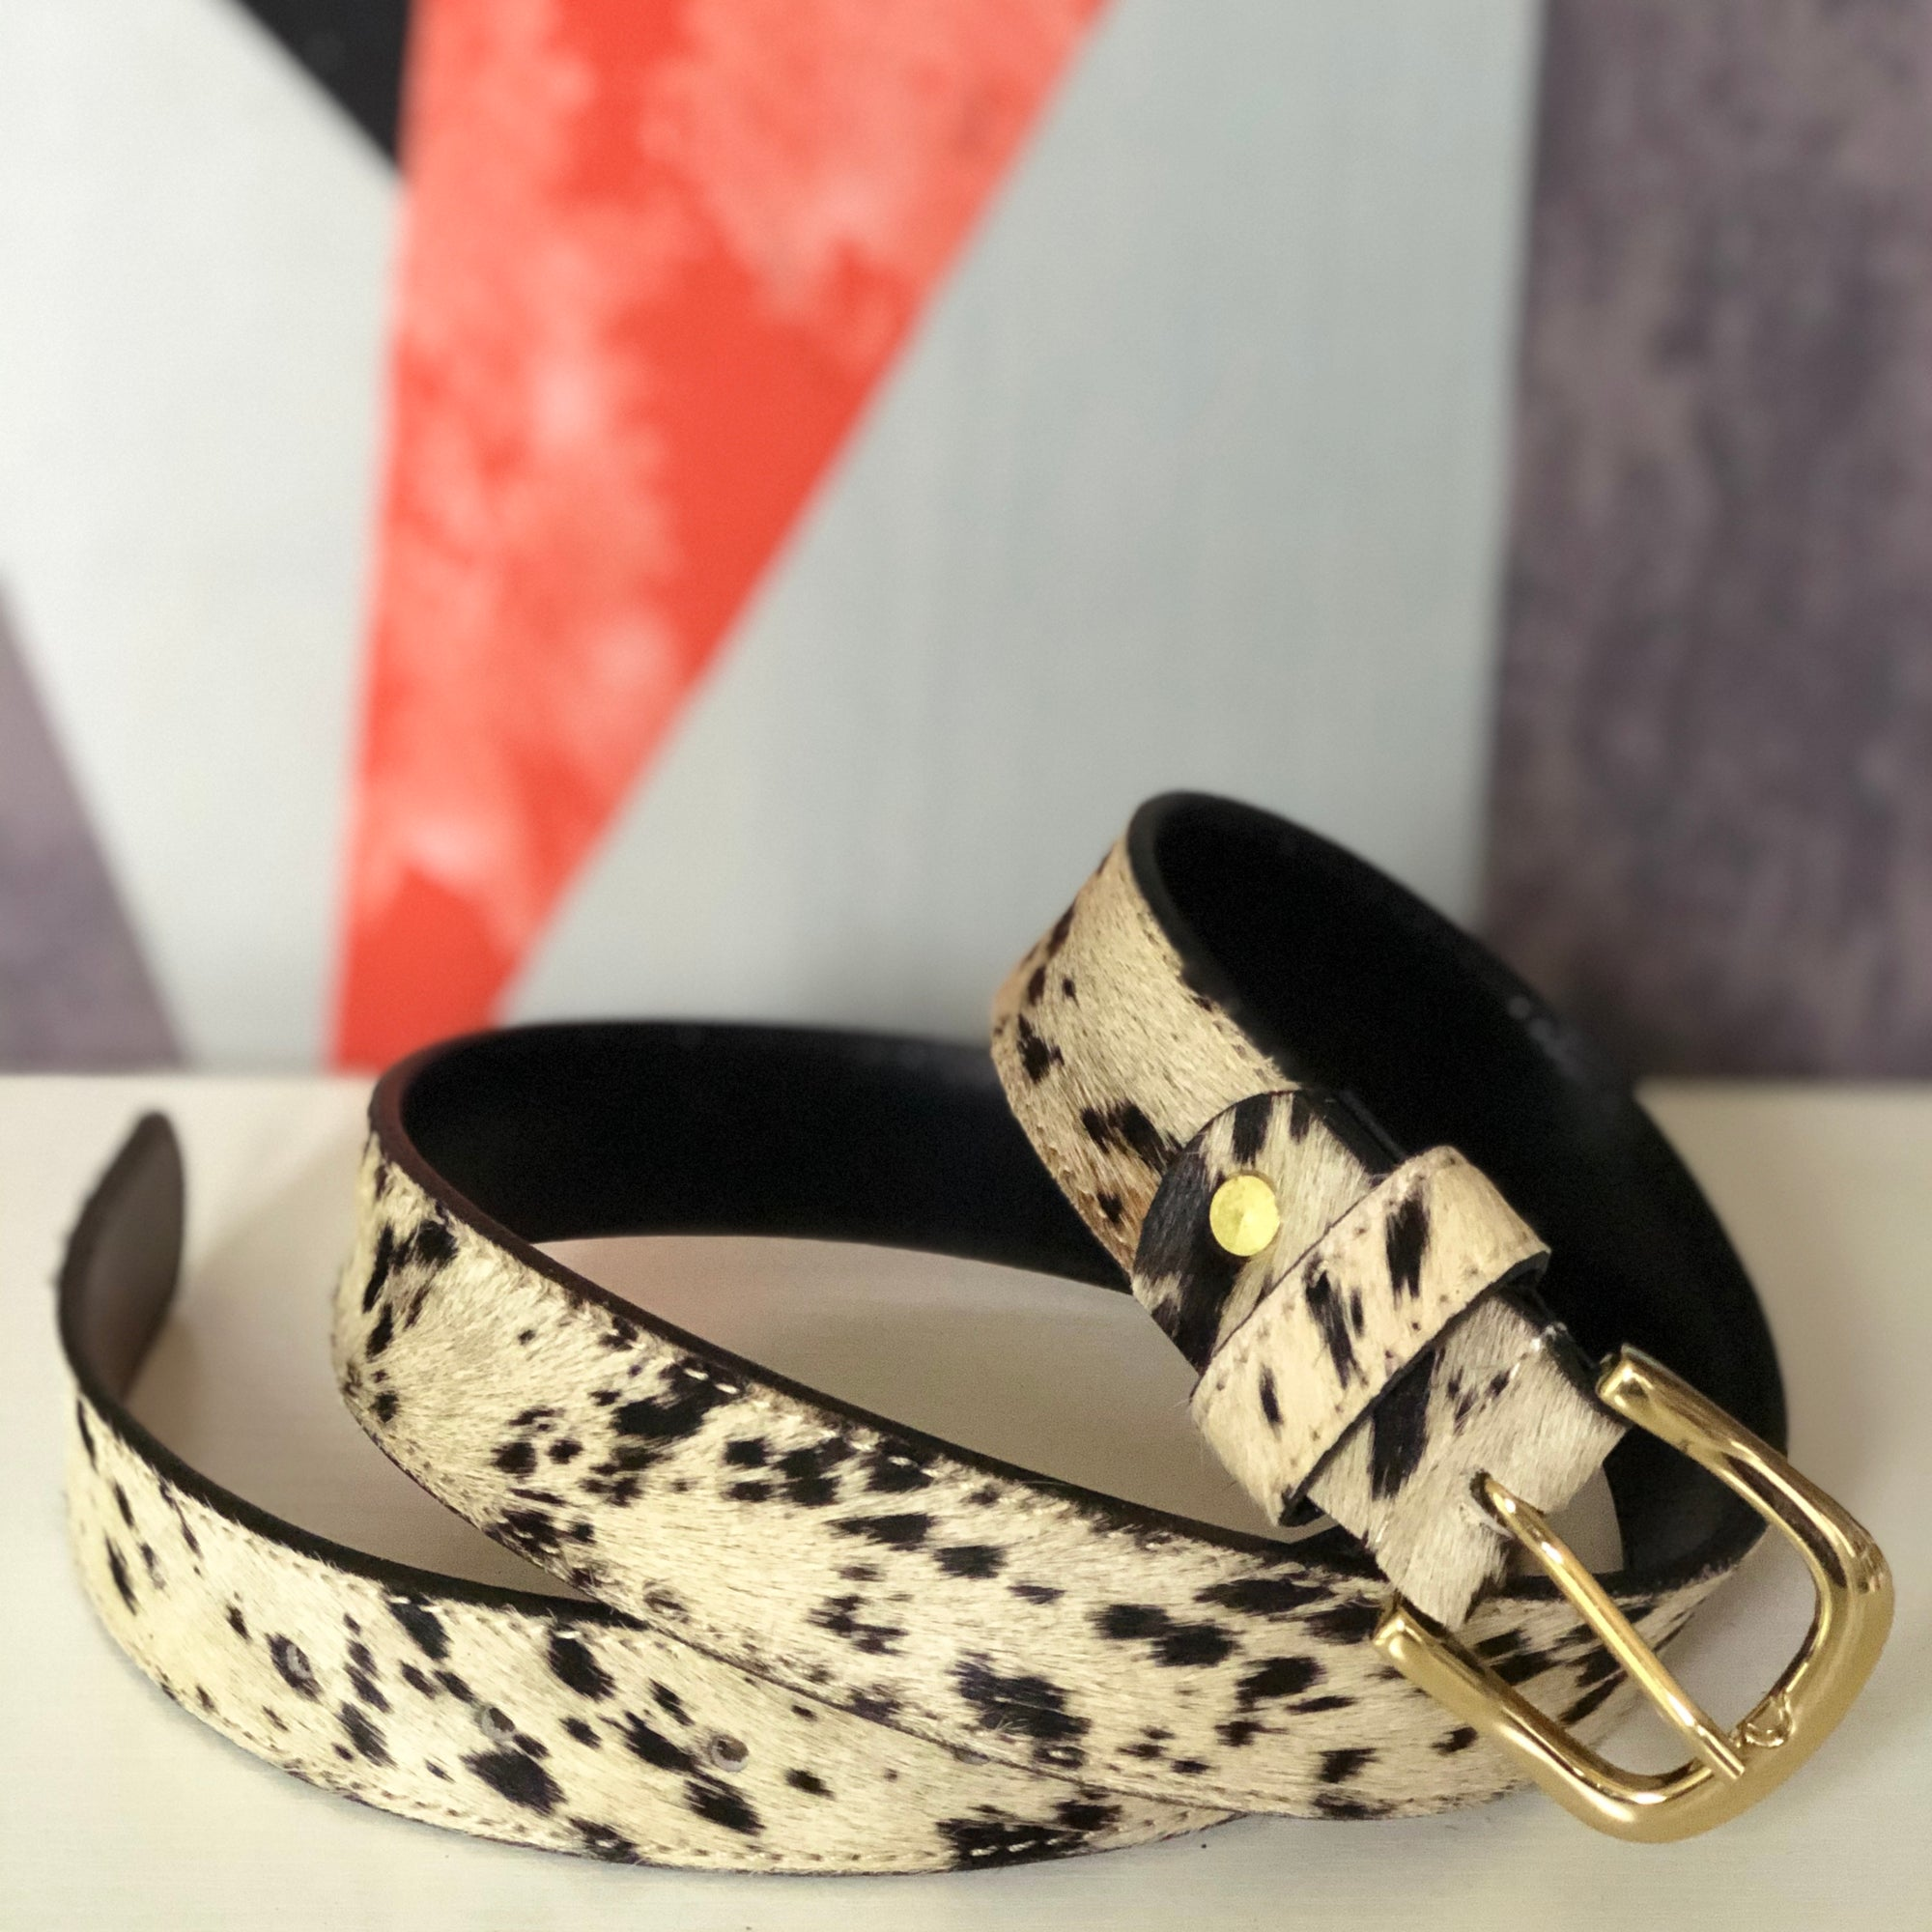 Spotty Hair on Hide Leather Pony Hair Womens' Belt BL19